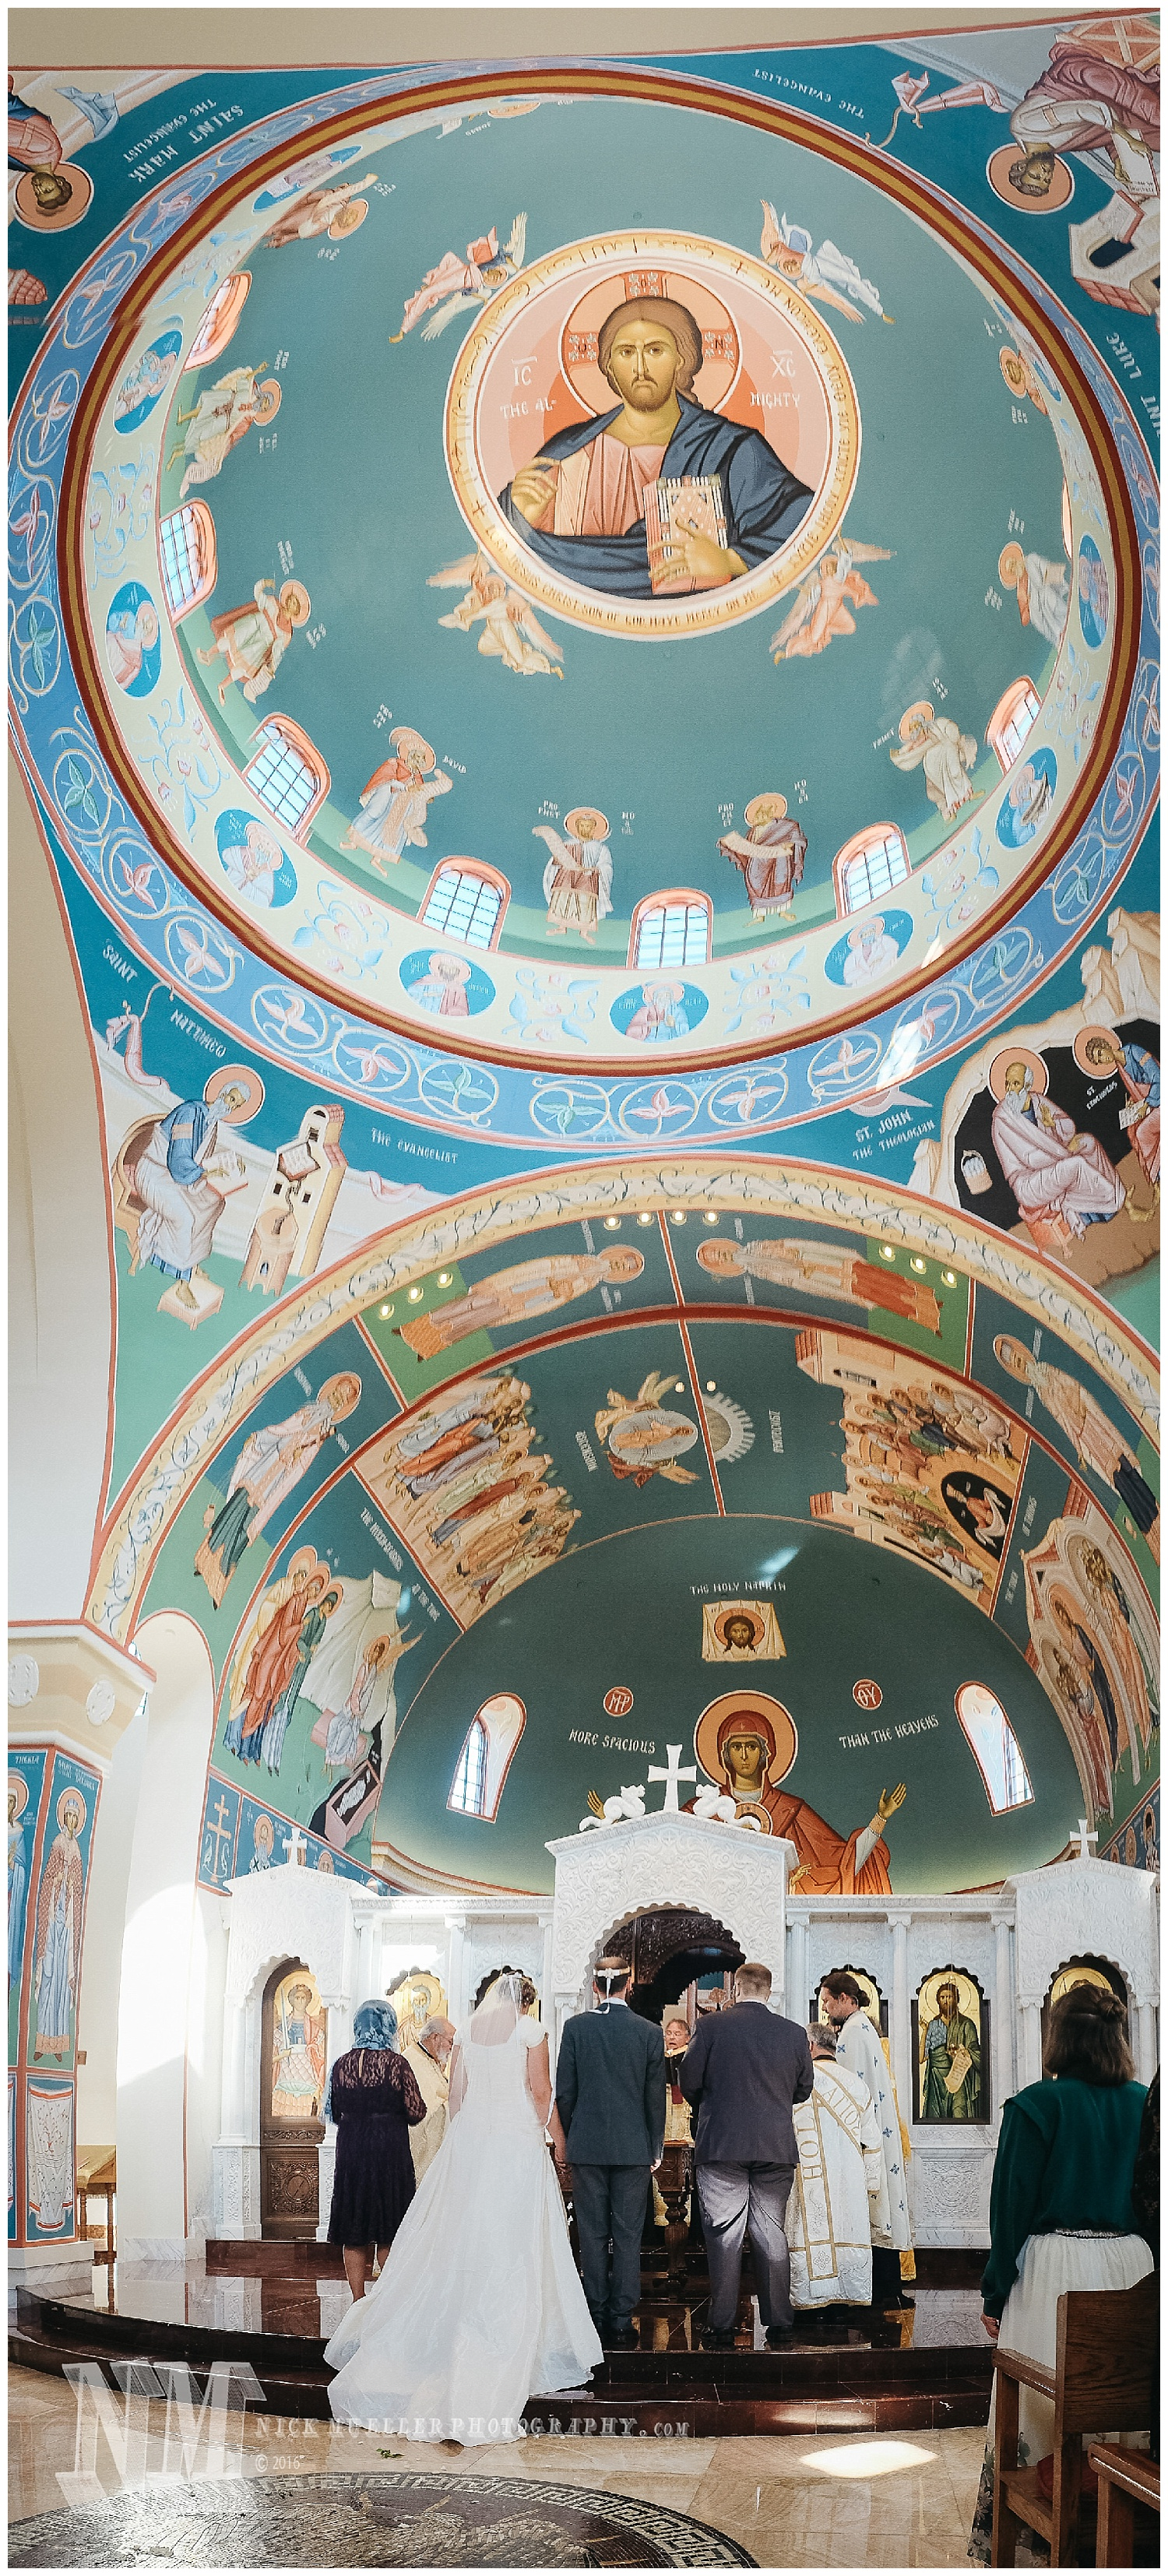 Bride and Groom under the Jesus Christ Pantocrator Icon in Dome